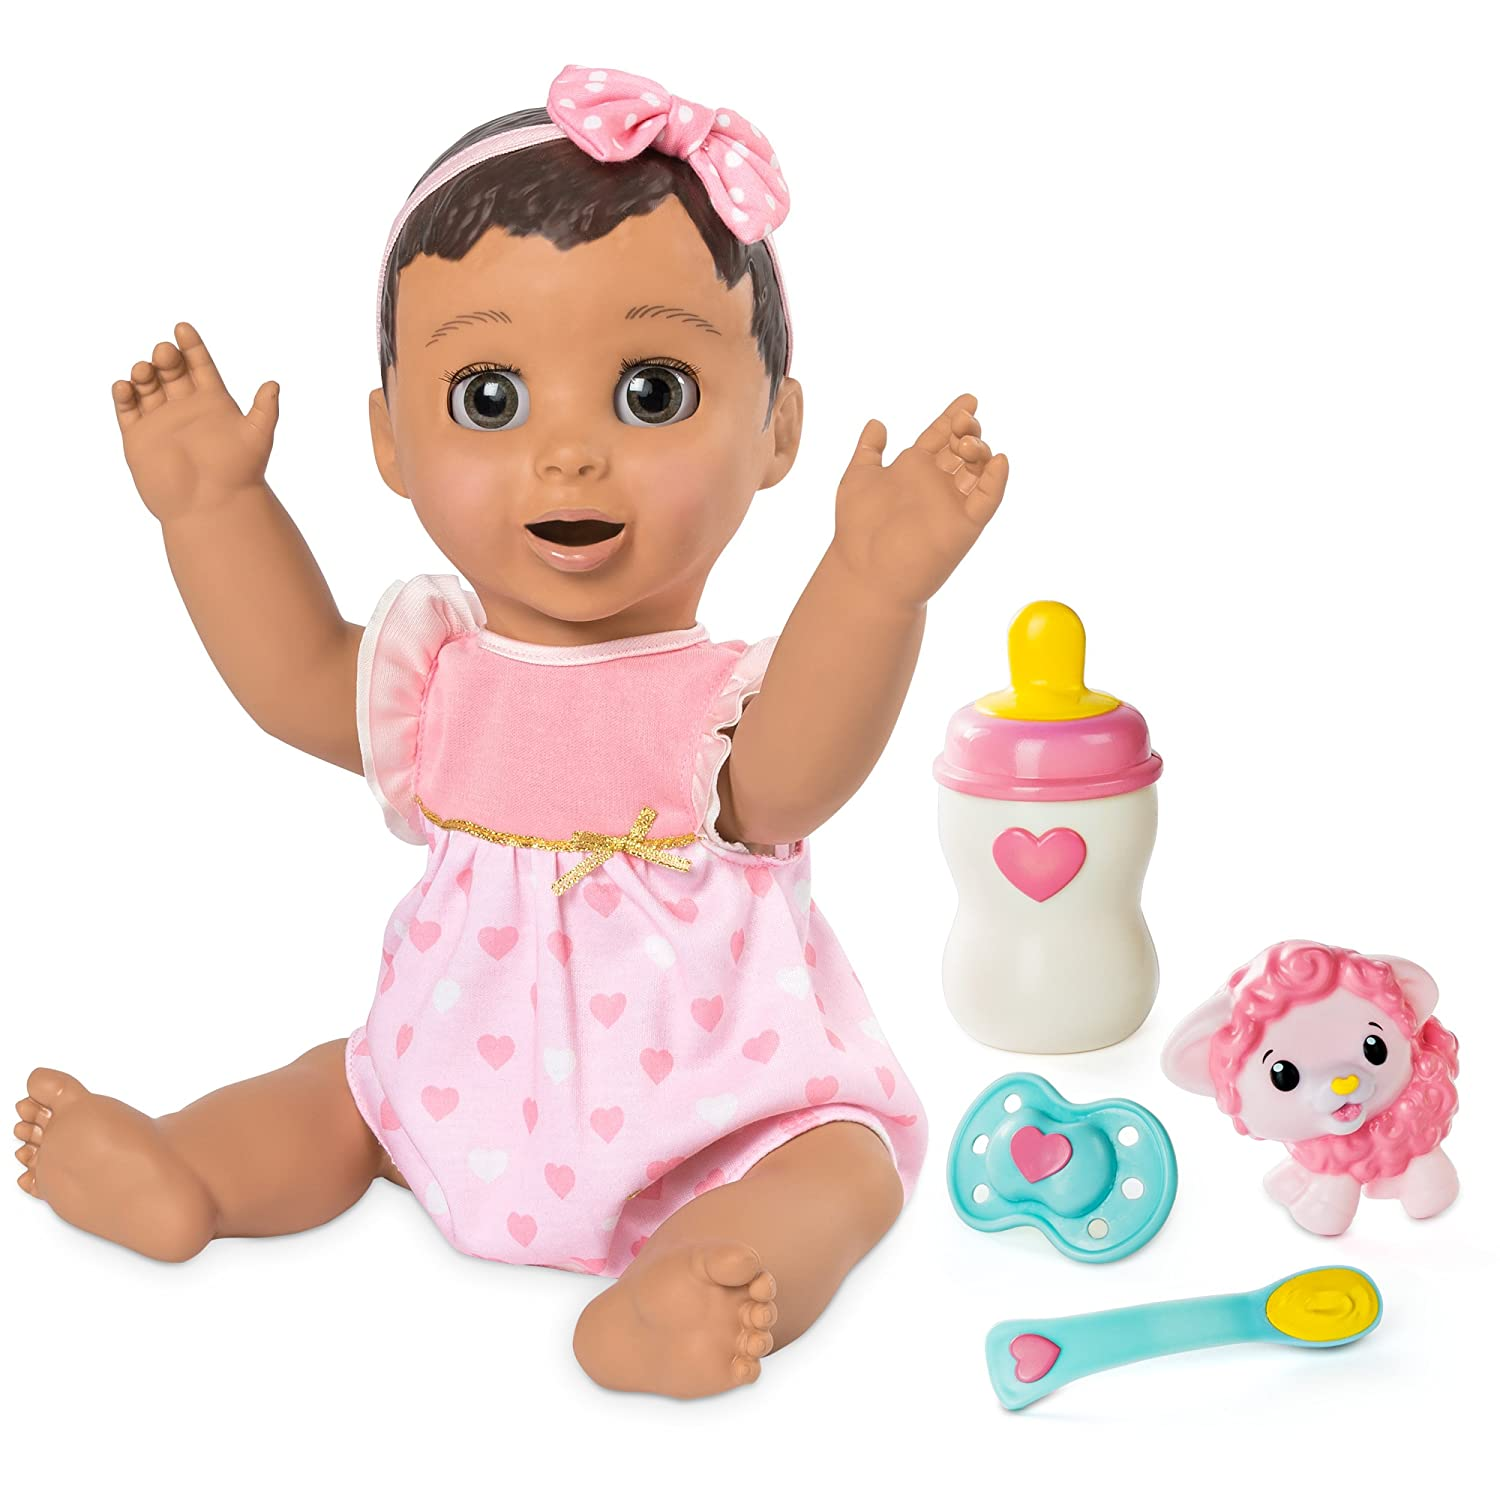 Luvabella Brunette Hair, Responsive Baby Doll with Real Expressions and Movement, for Ages 4 and Up Spin Master 6038114